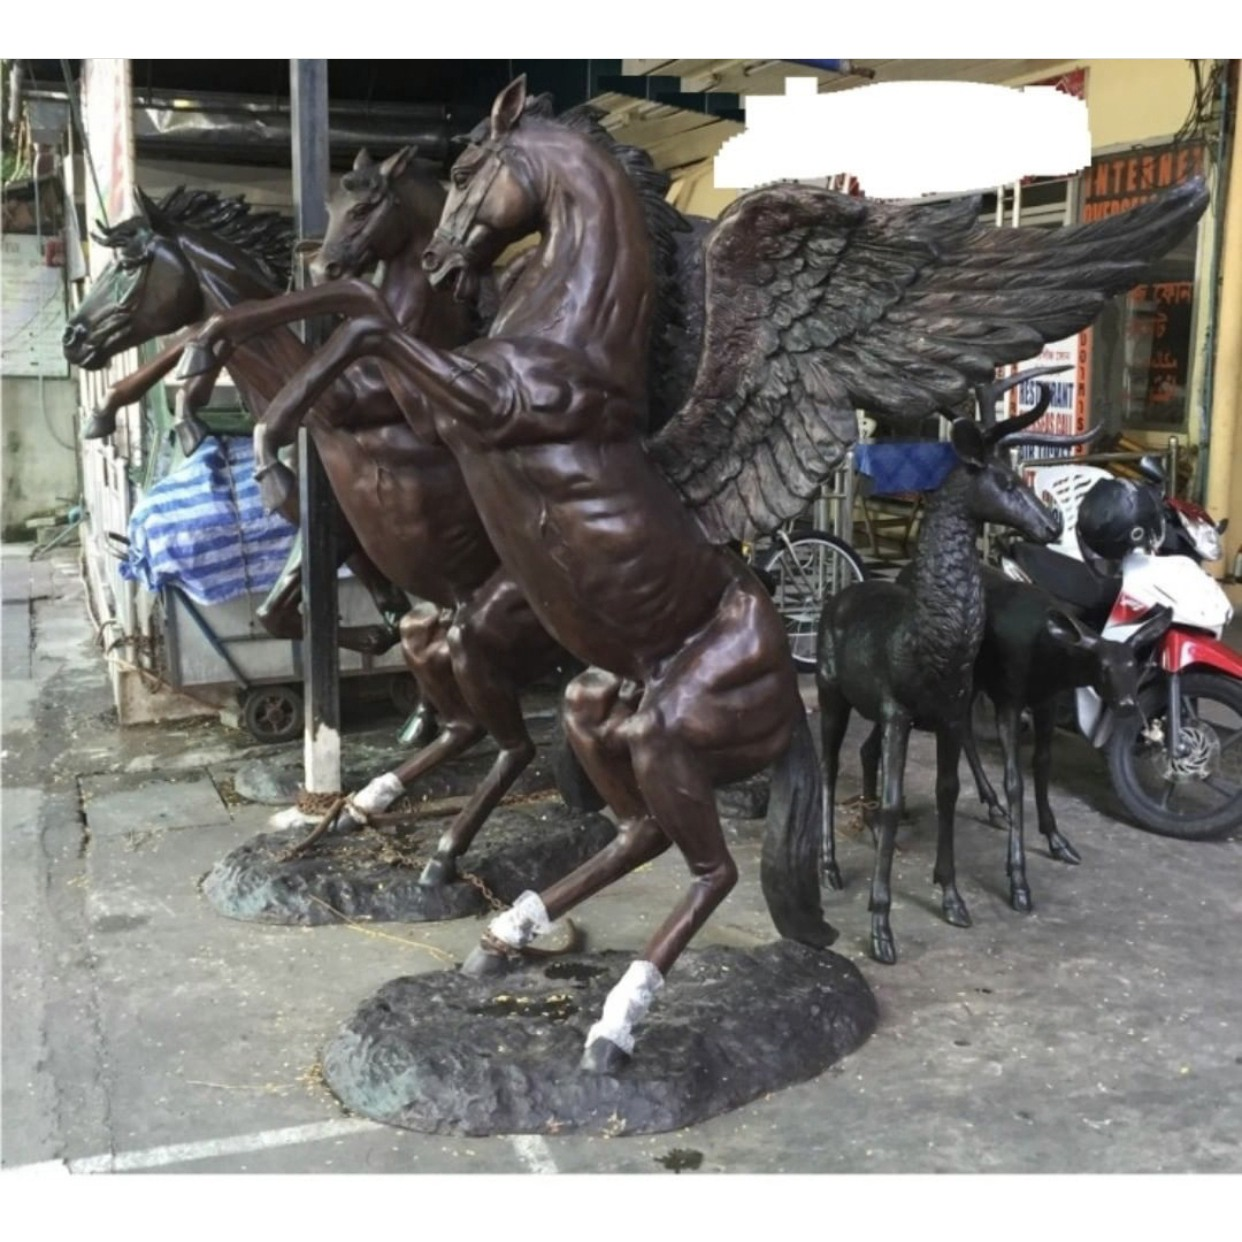 copper winged horse statue lifting legs